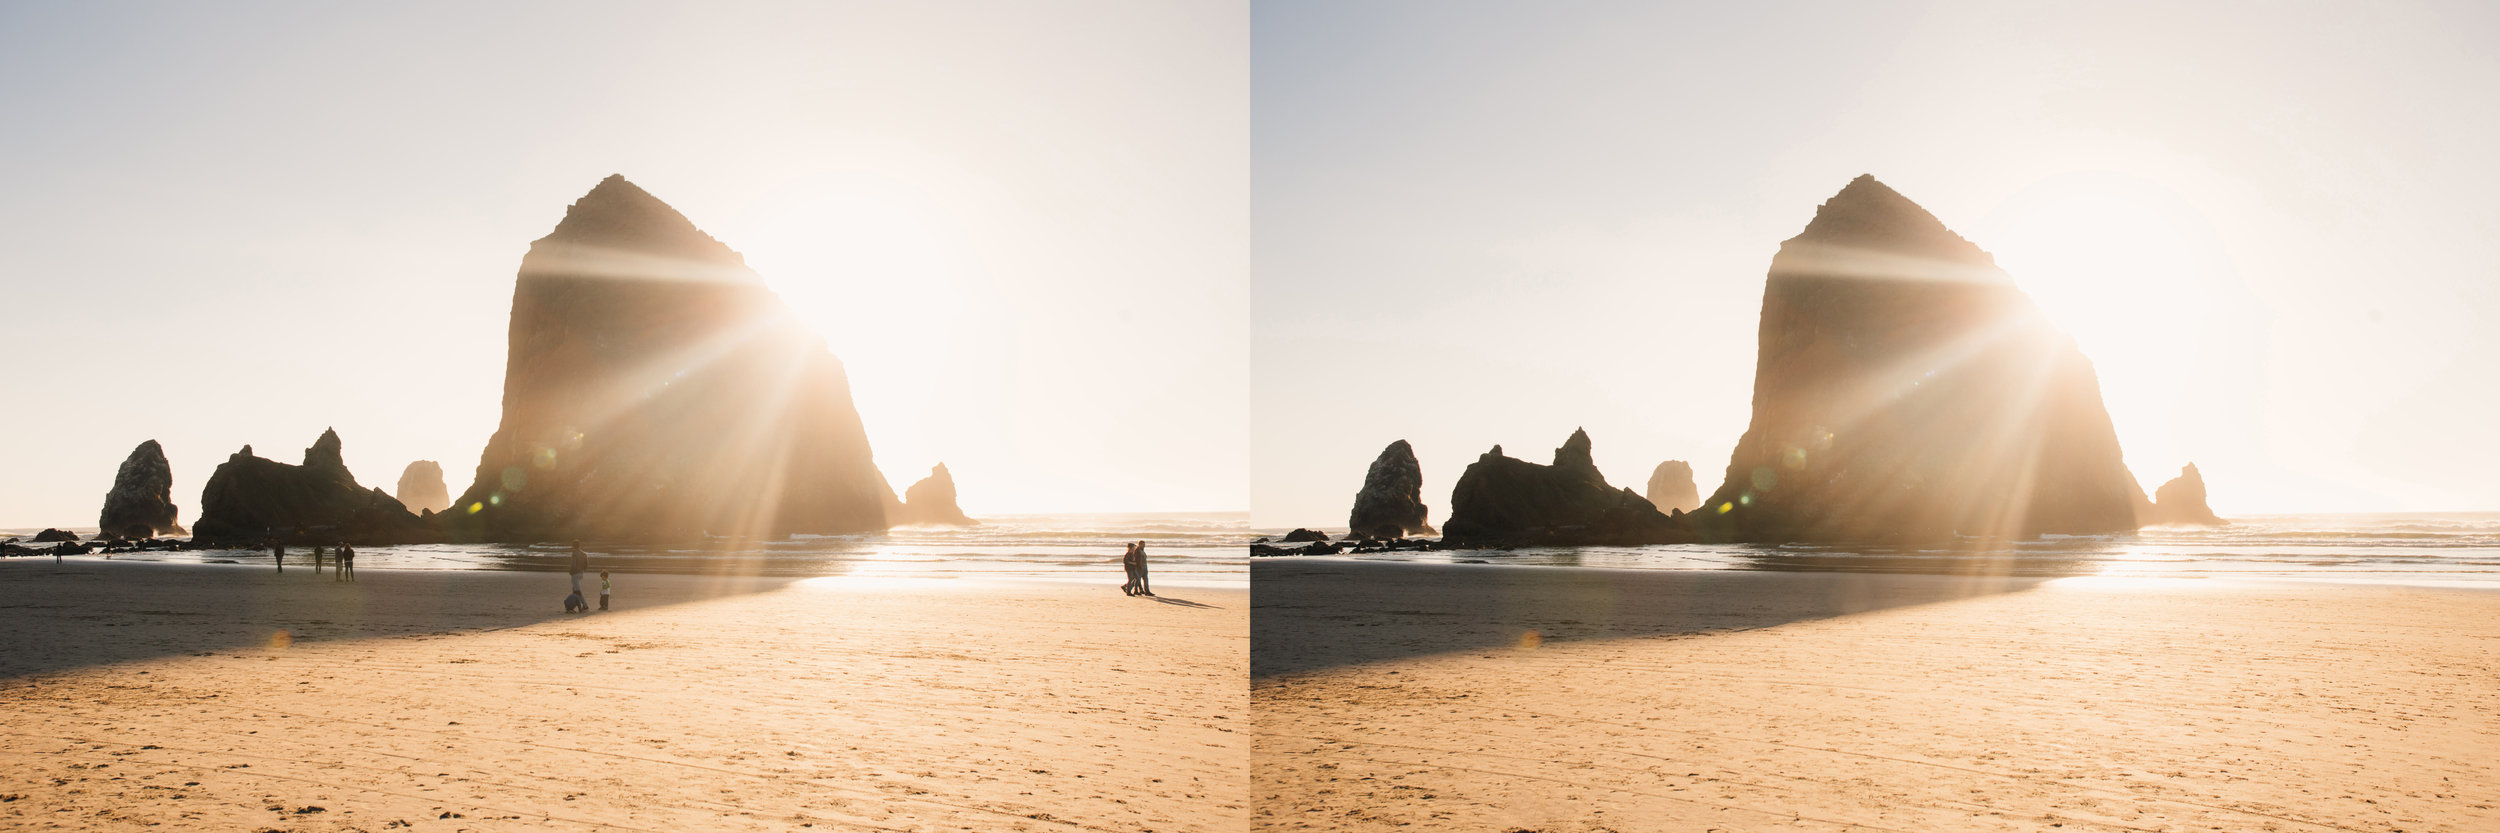 canon beach before after no ppl try 2.jpg